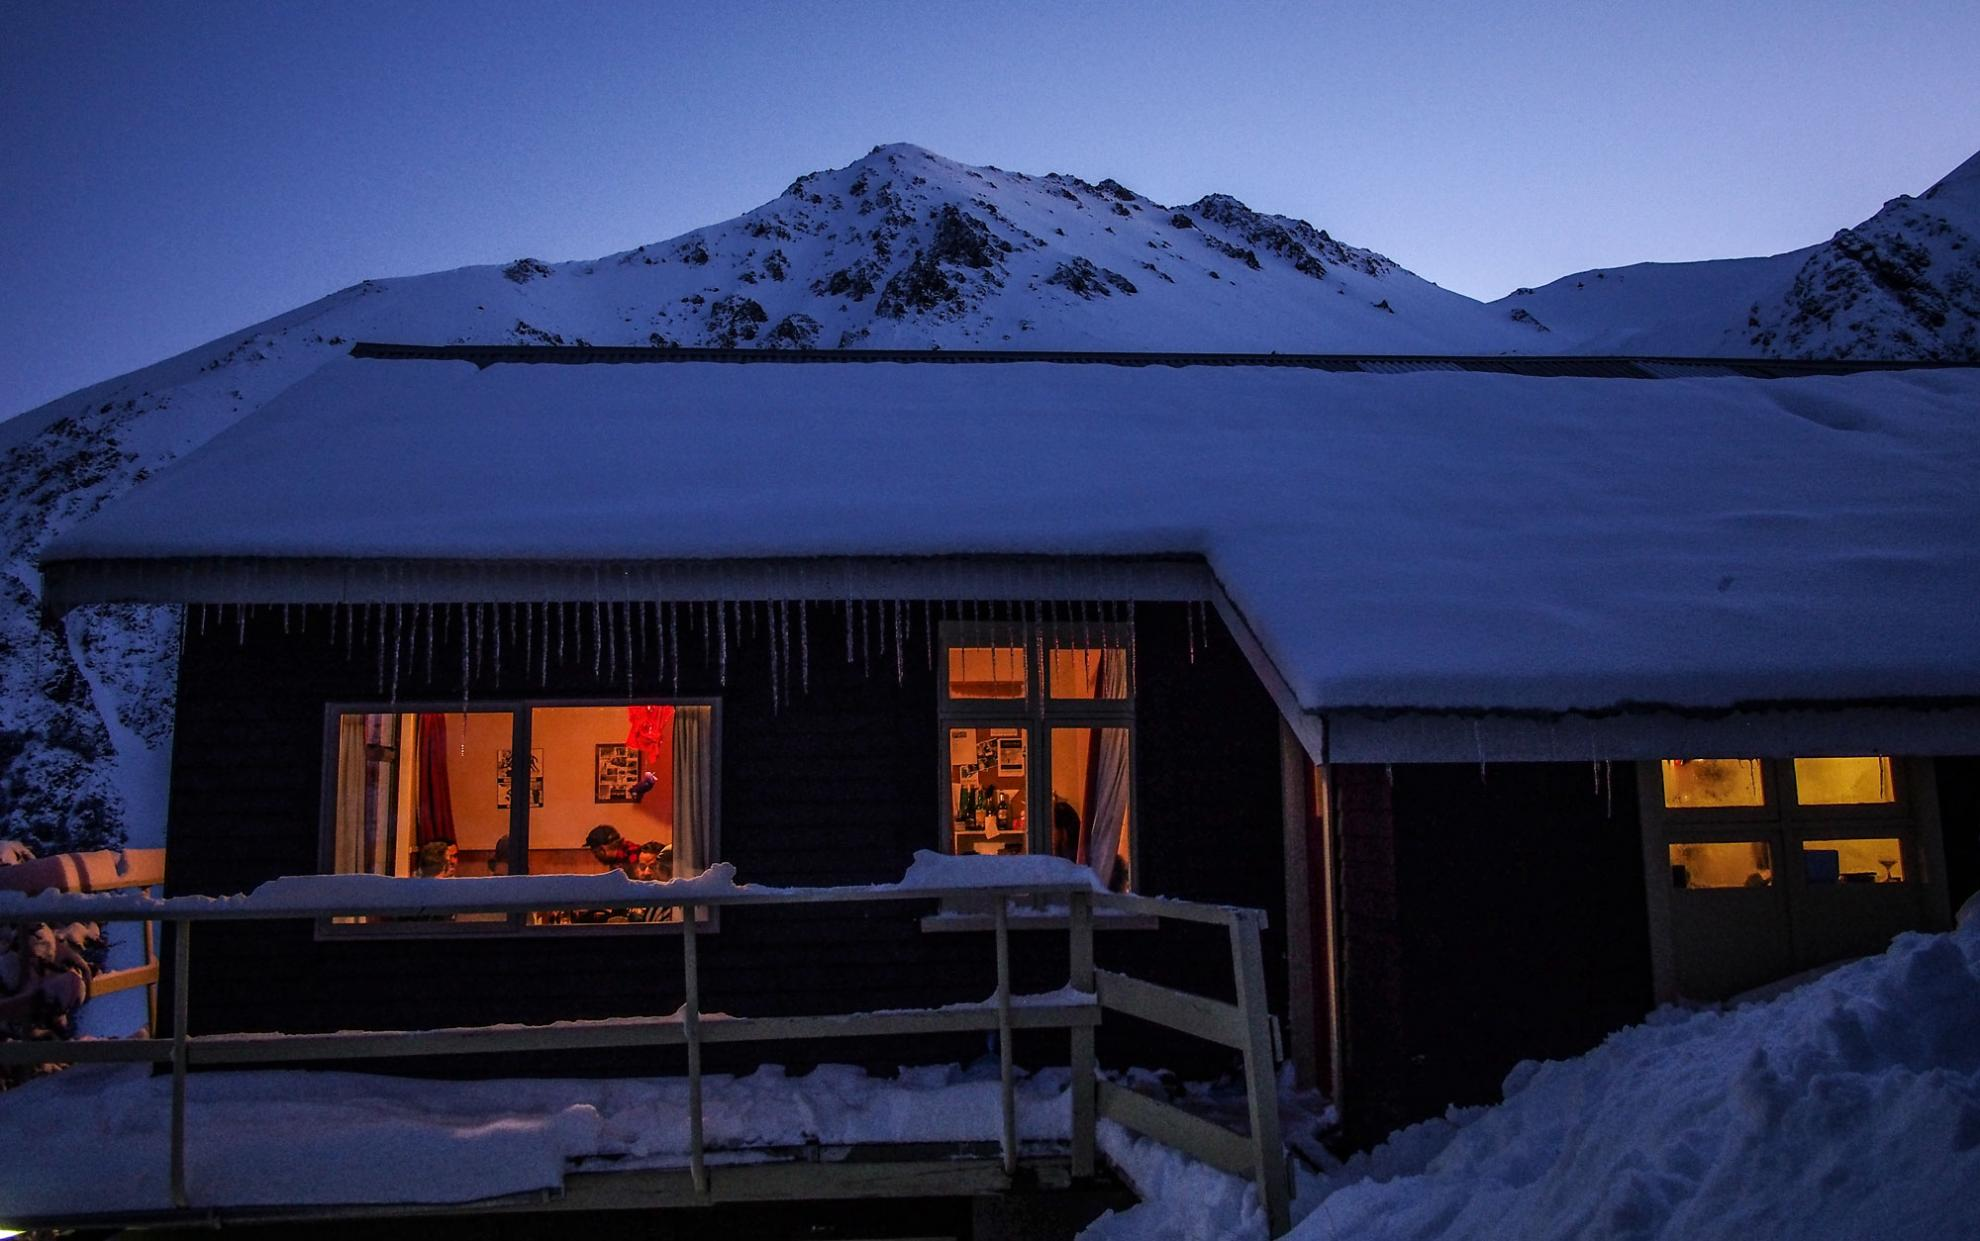 onmountain ski accommodation